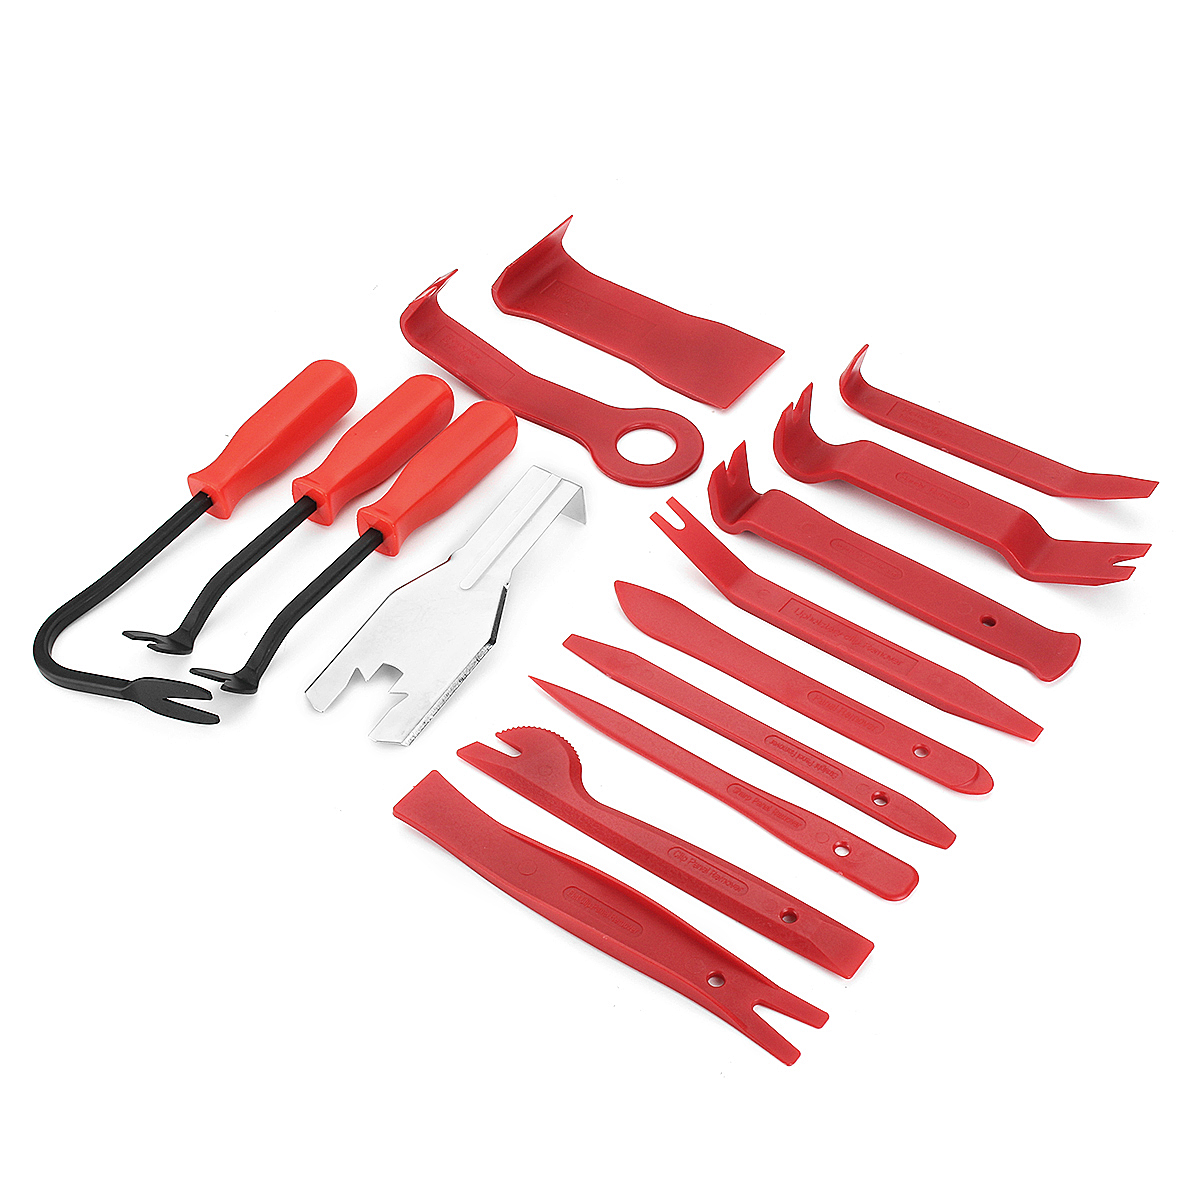 15pcs Meter Door Molding Remover Panel Trim Clip Removal Tools Kit Red Set